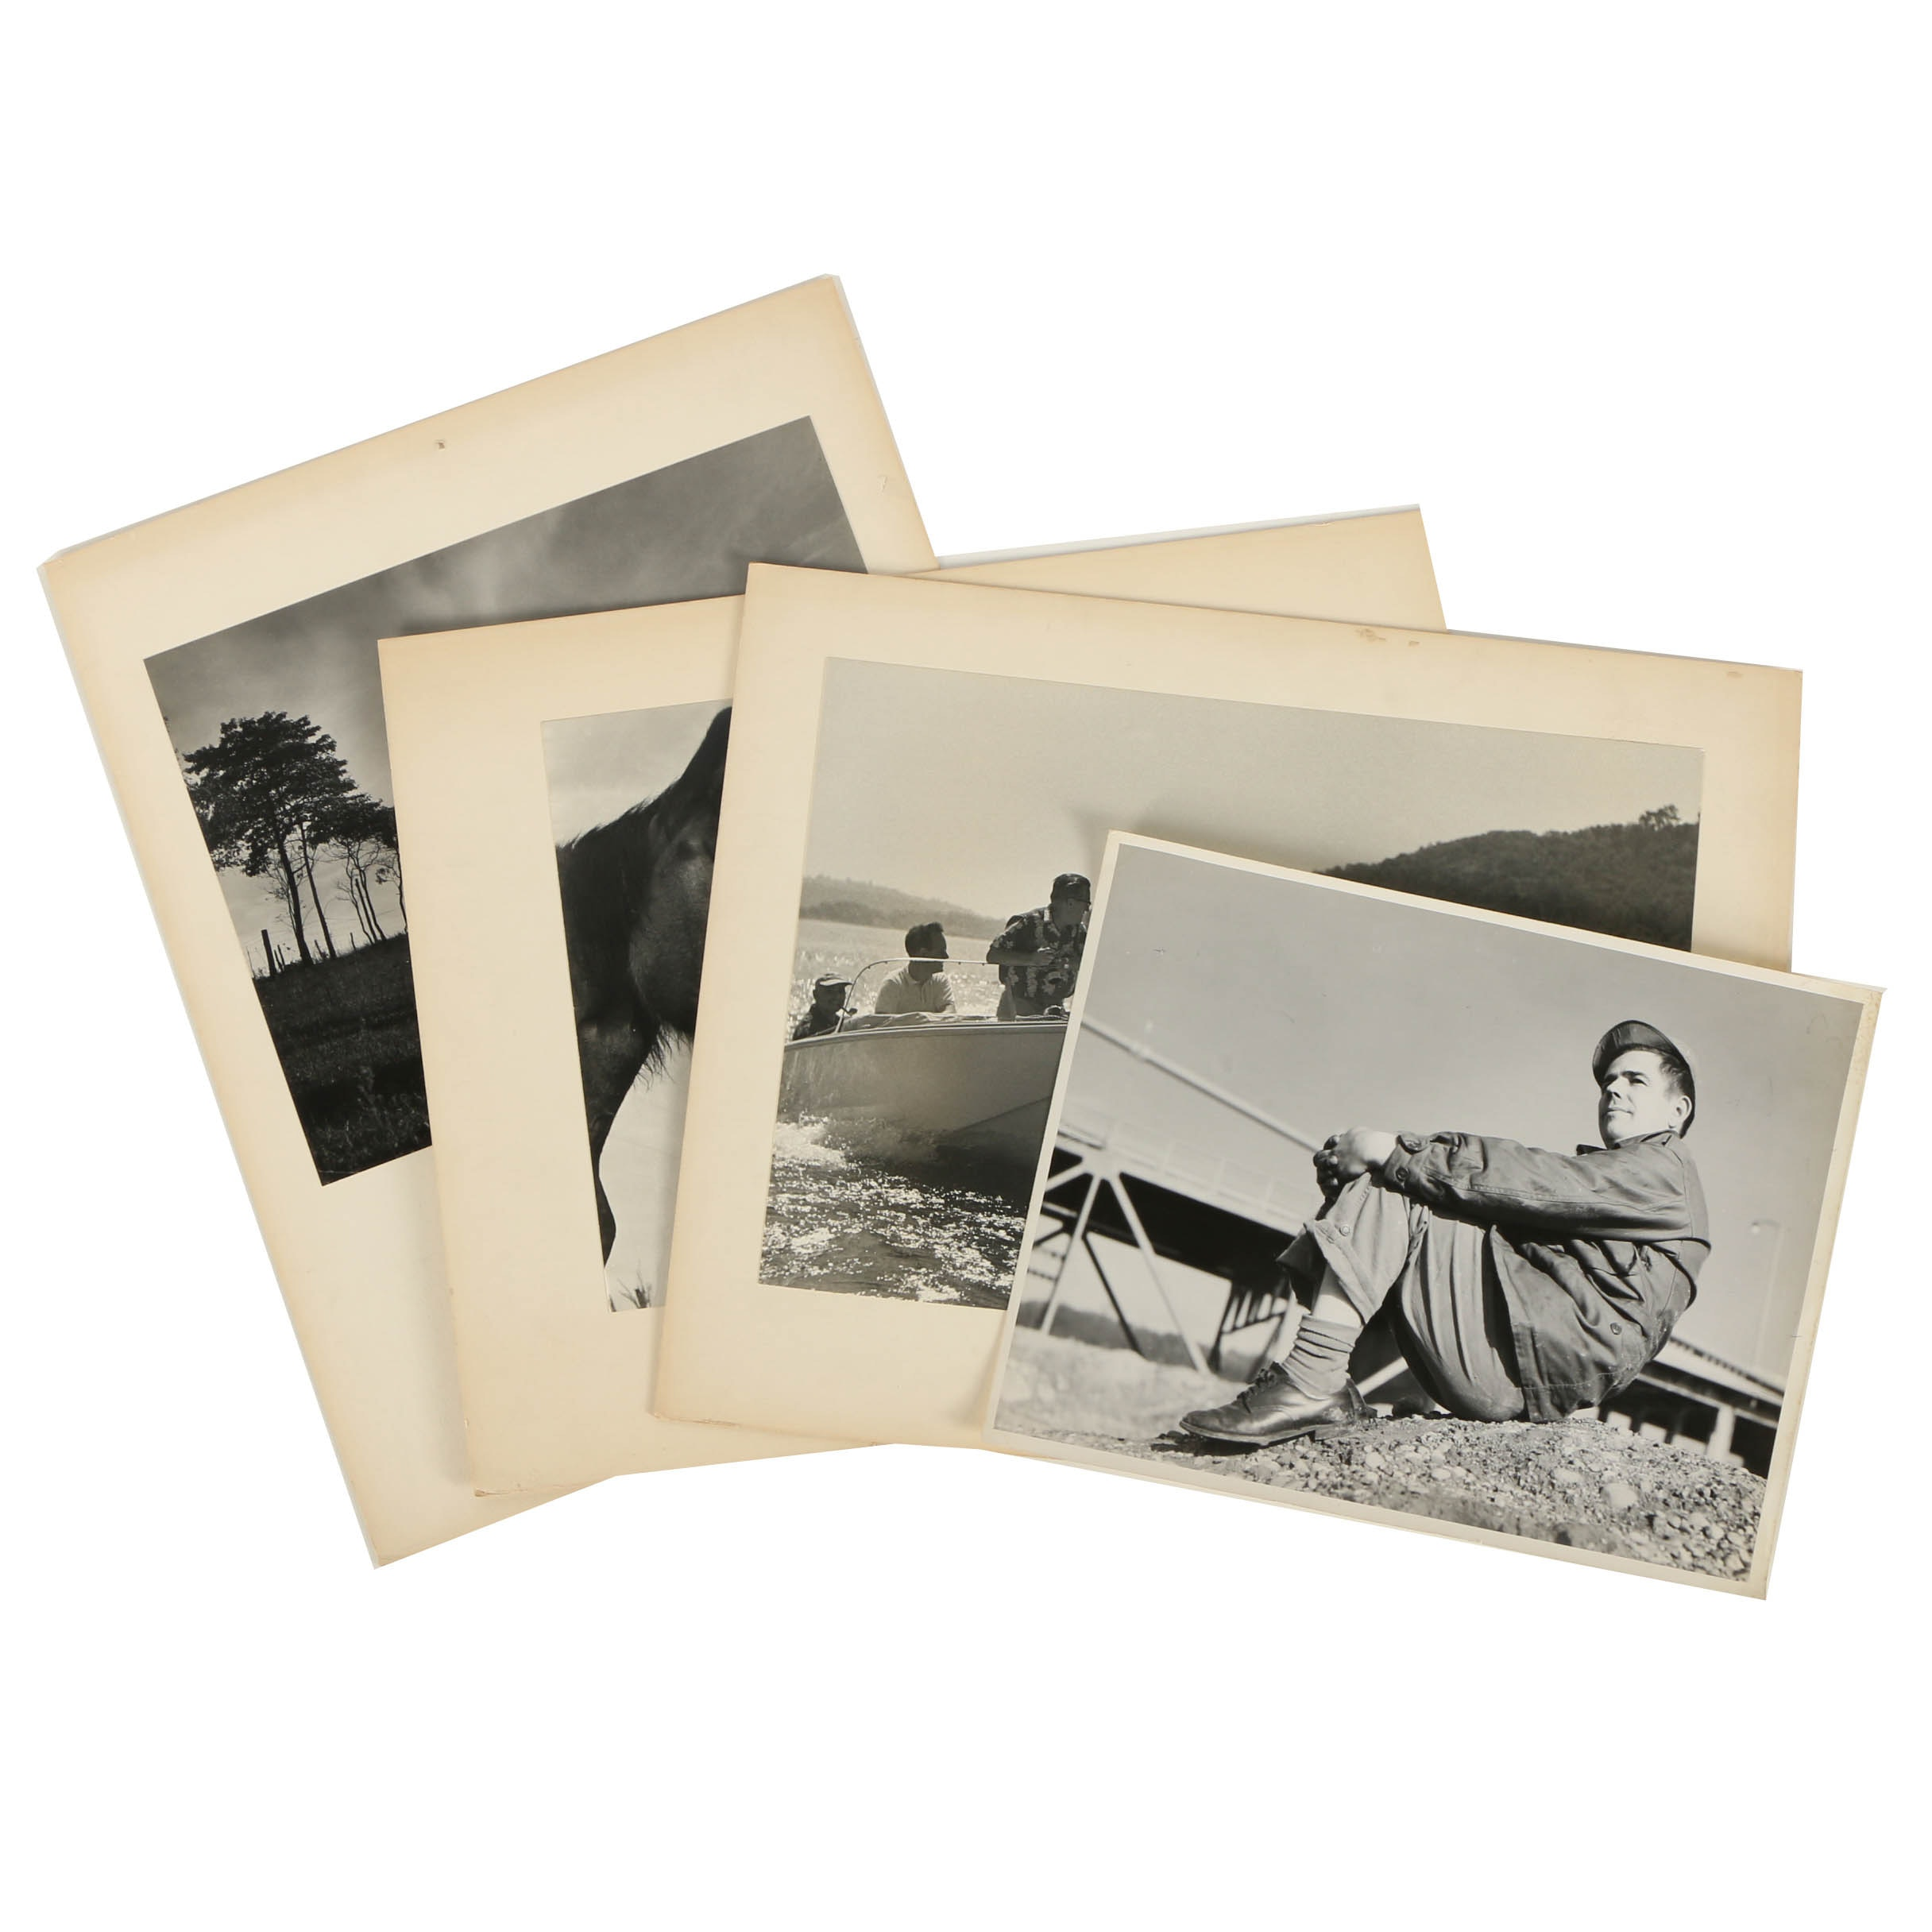 Four Don Dover Black and White Photographs Including a Self Portrait